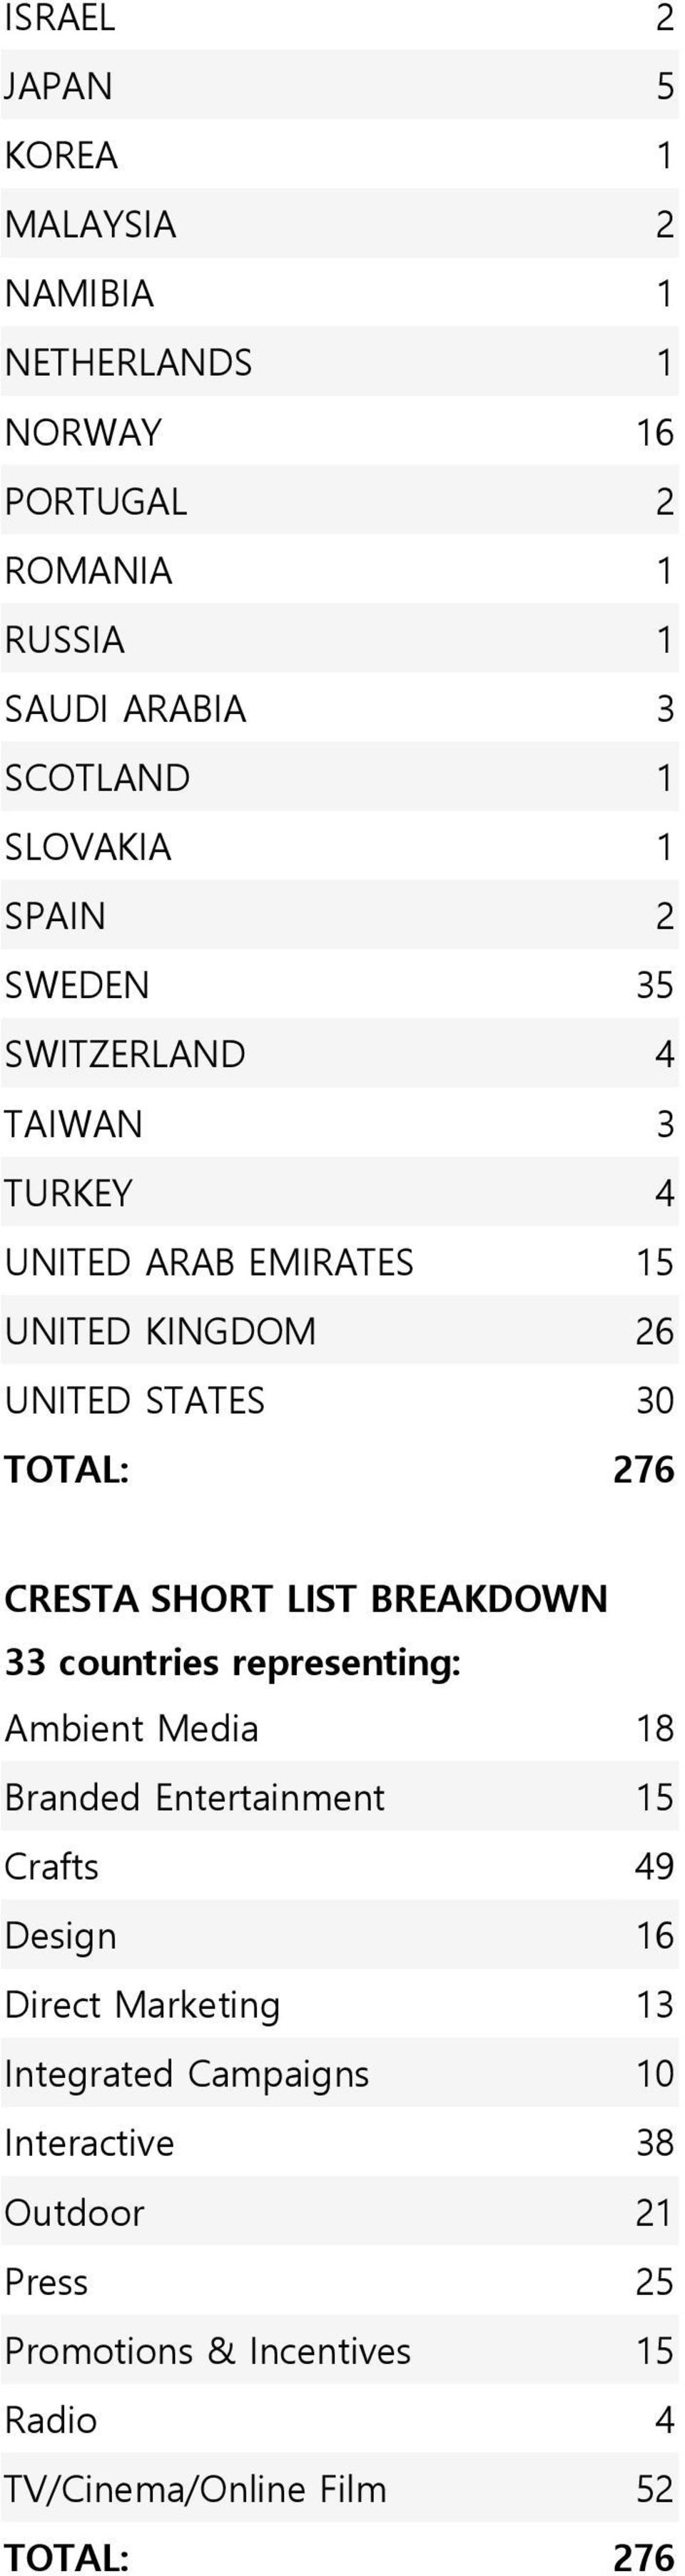 CRESTA SHORT LIST BREAKDOWN 33 countries representing: Ambient Media 18 Branded Entertainment 15 Crafts 49 Design 16 Direct